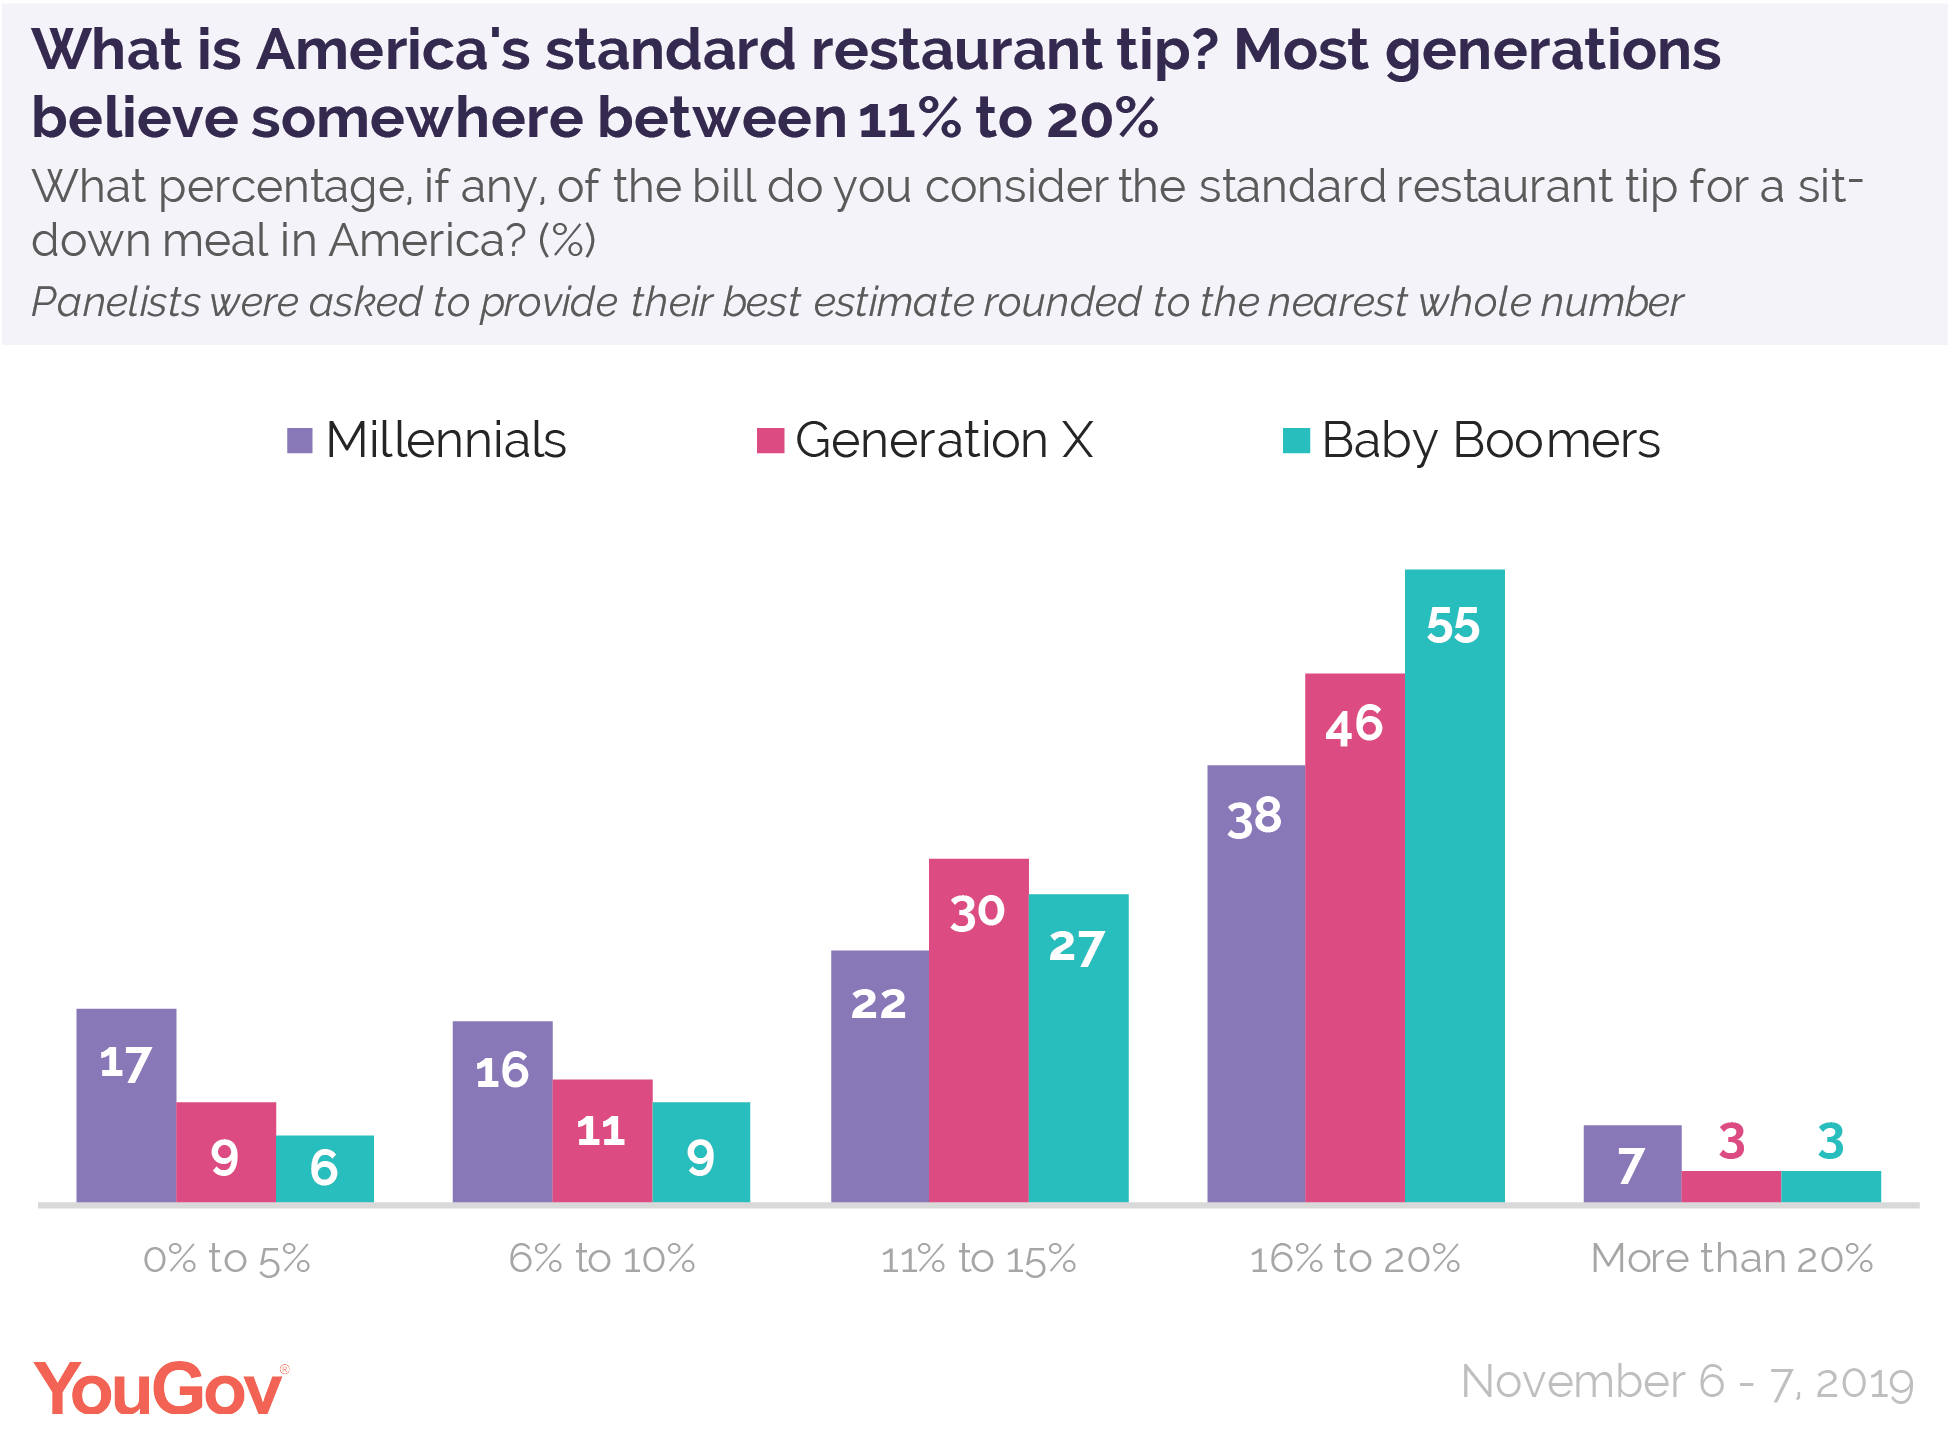 What is America's standard restaurant tip? Most generations believe somewhere between 11% to 20%